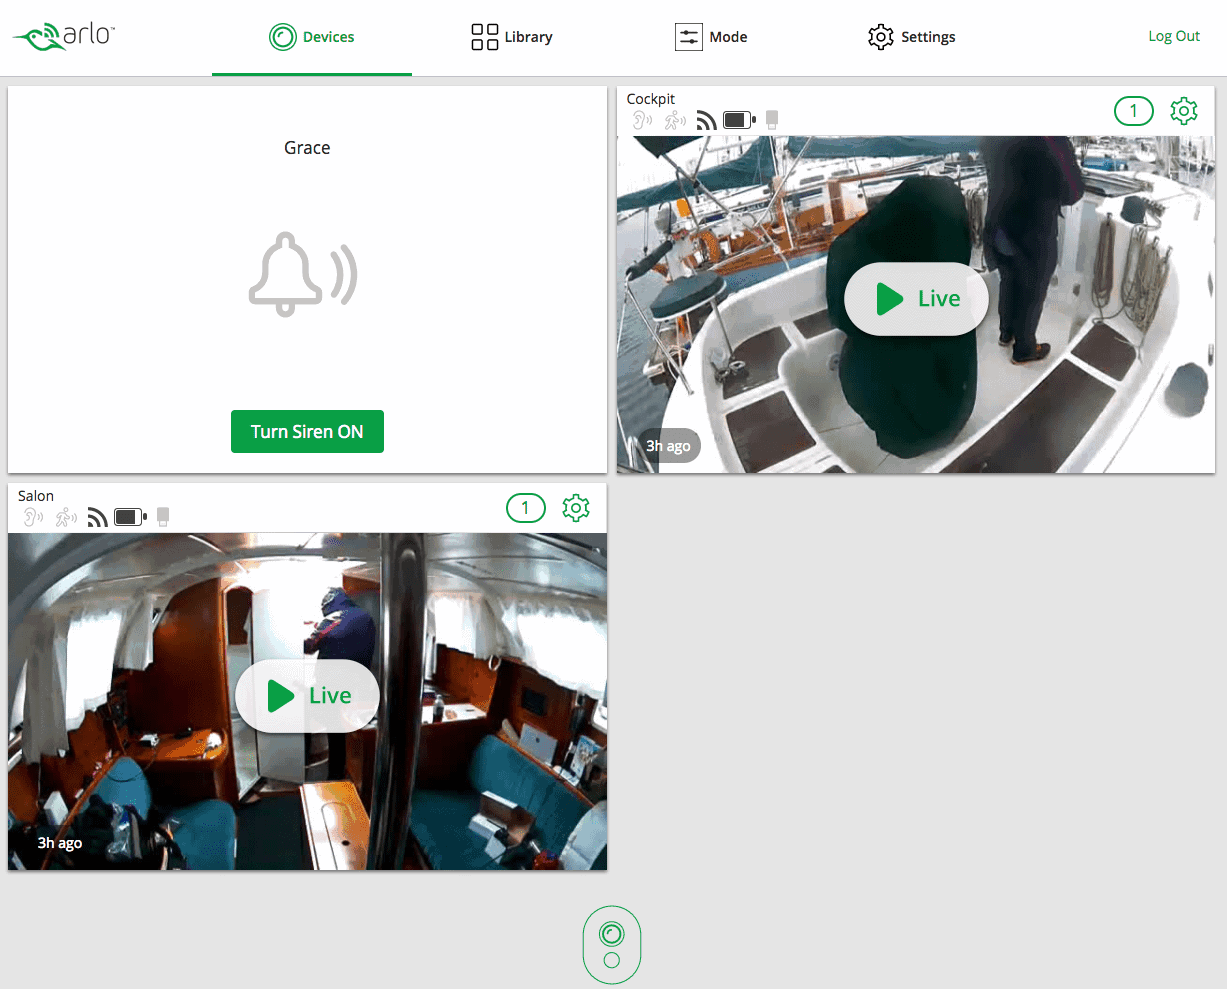 Arlo-on-sailboat-web-interface